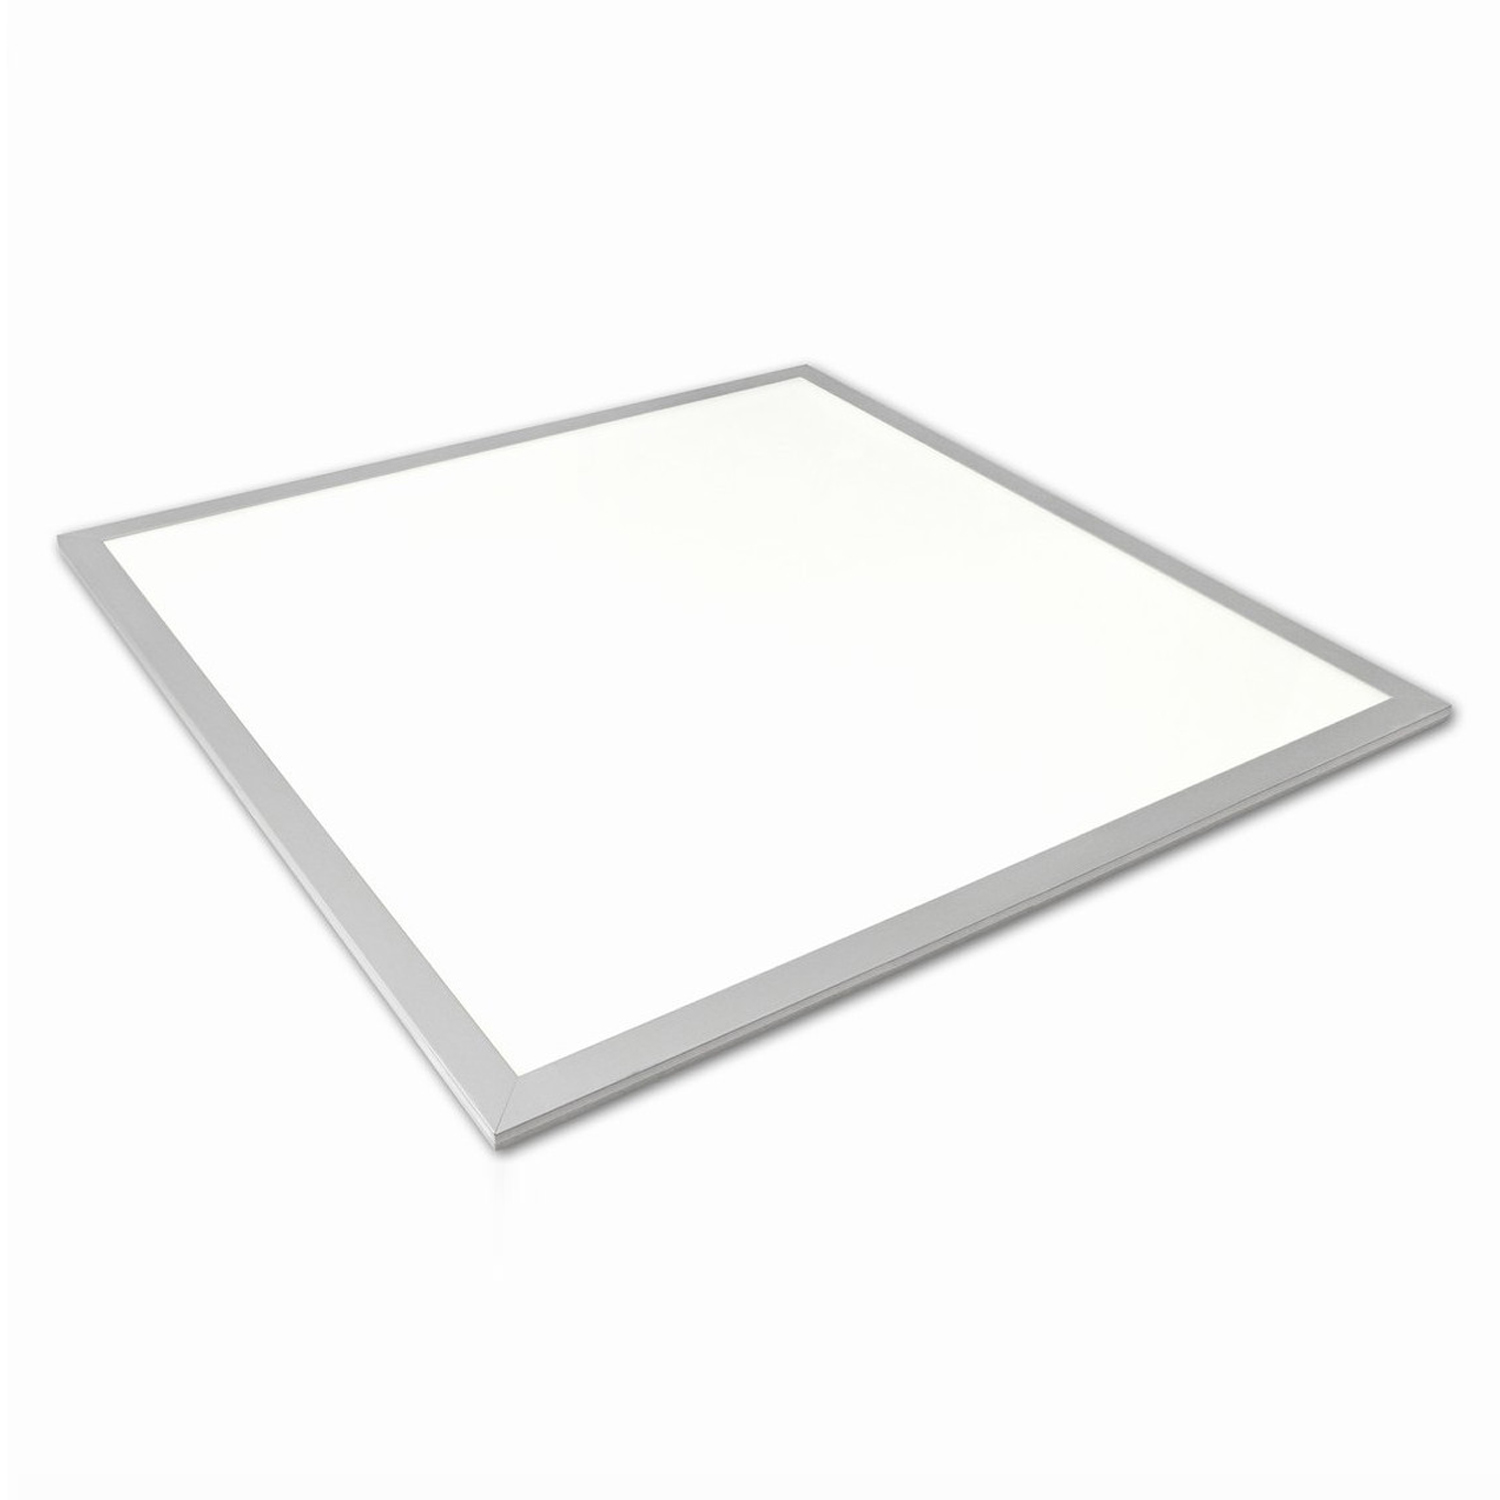 Panel Light 50w Led Panel Light Fixture 2ft X 2ft Socal Led Lighting